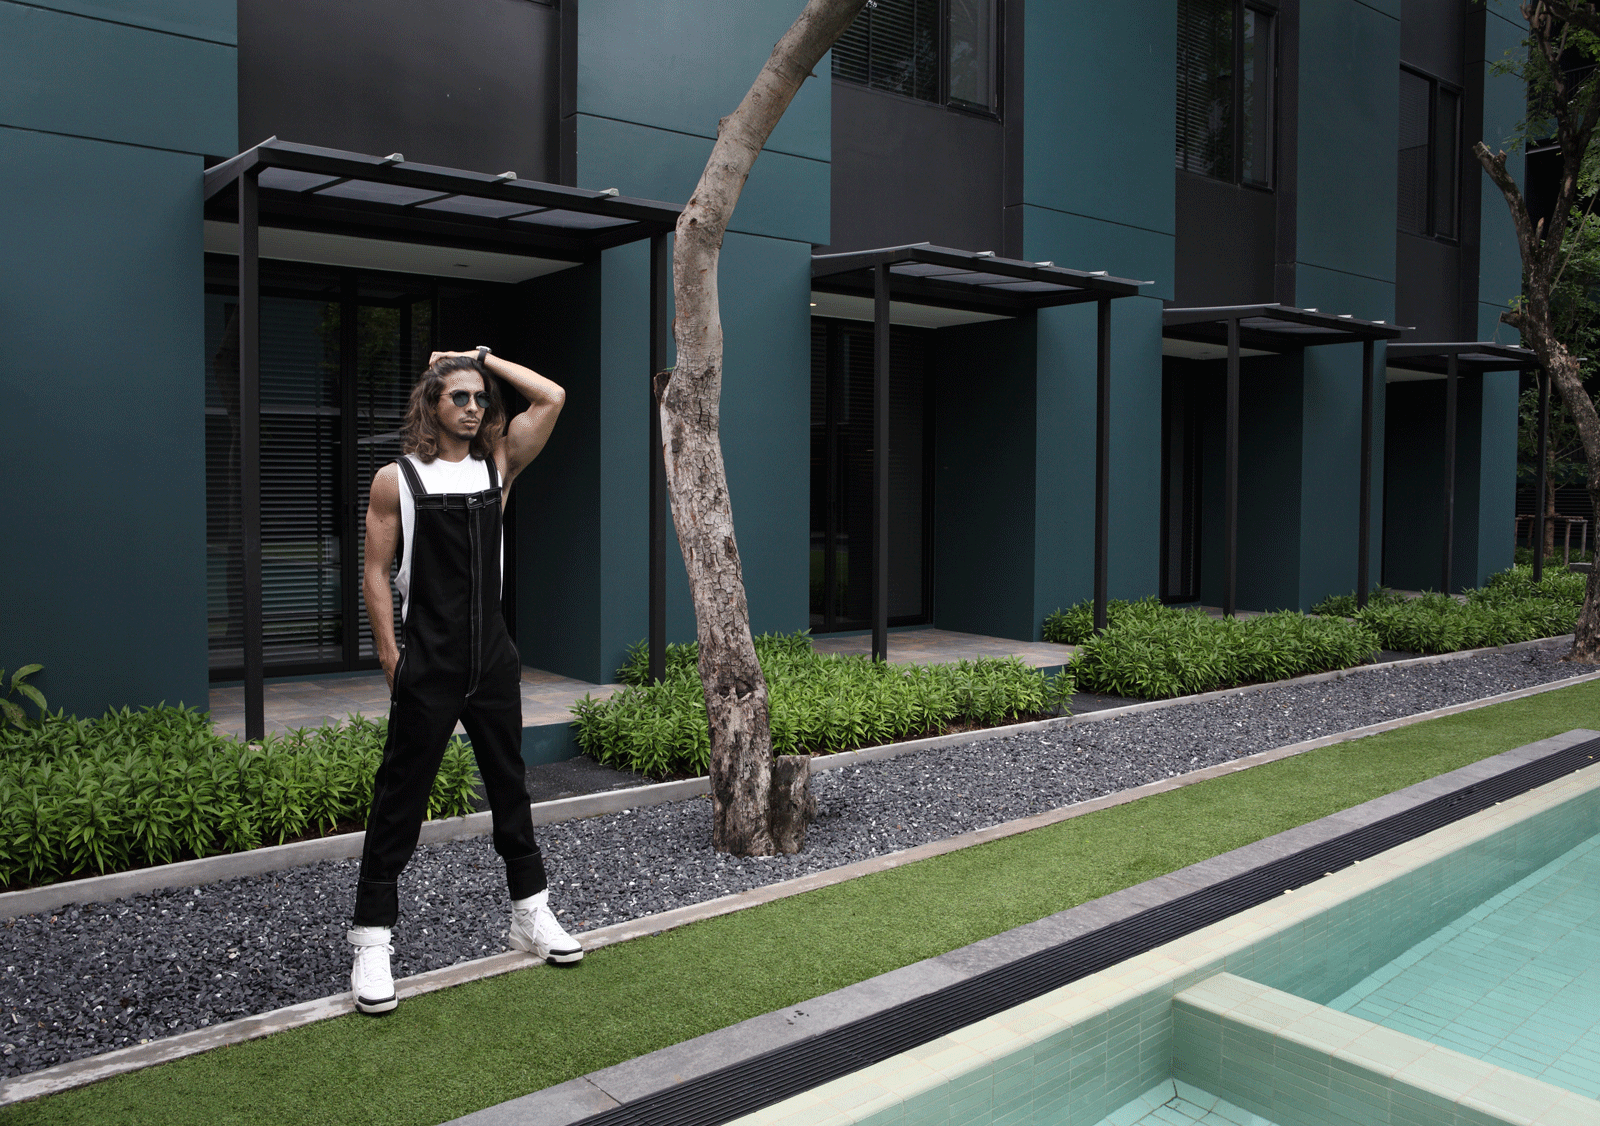 jeans and shoes : GIVENCHY / tshirt : SARIT / sunglasses : TAVAT  watch : Hamilton Intra-Matic 68